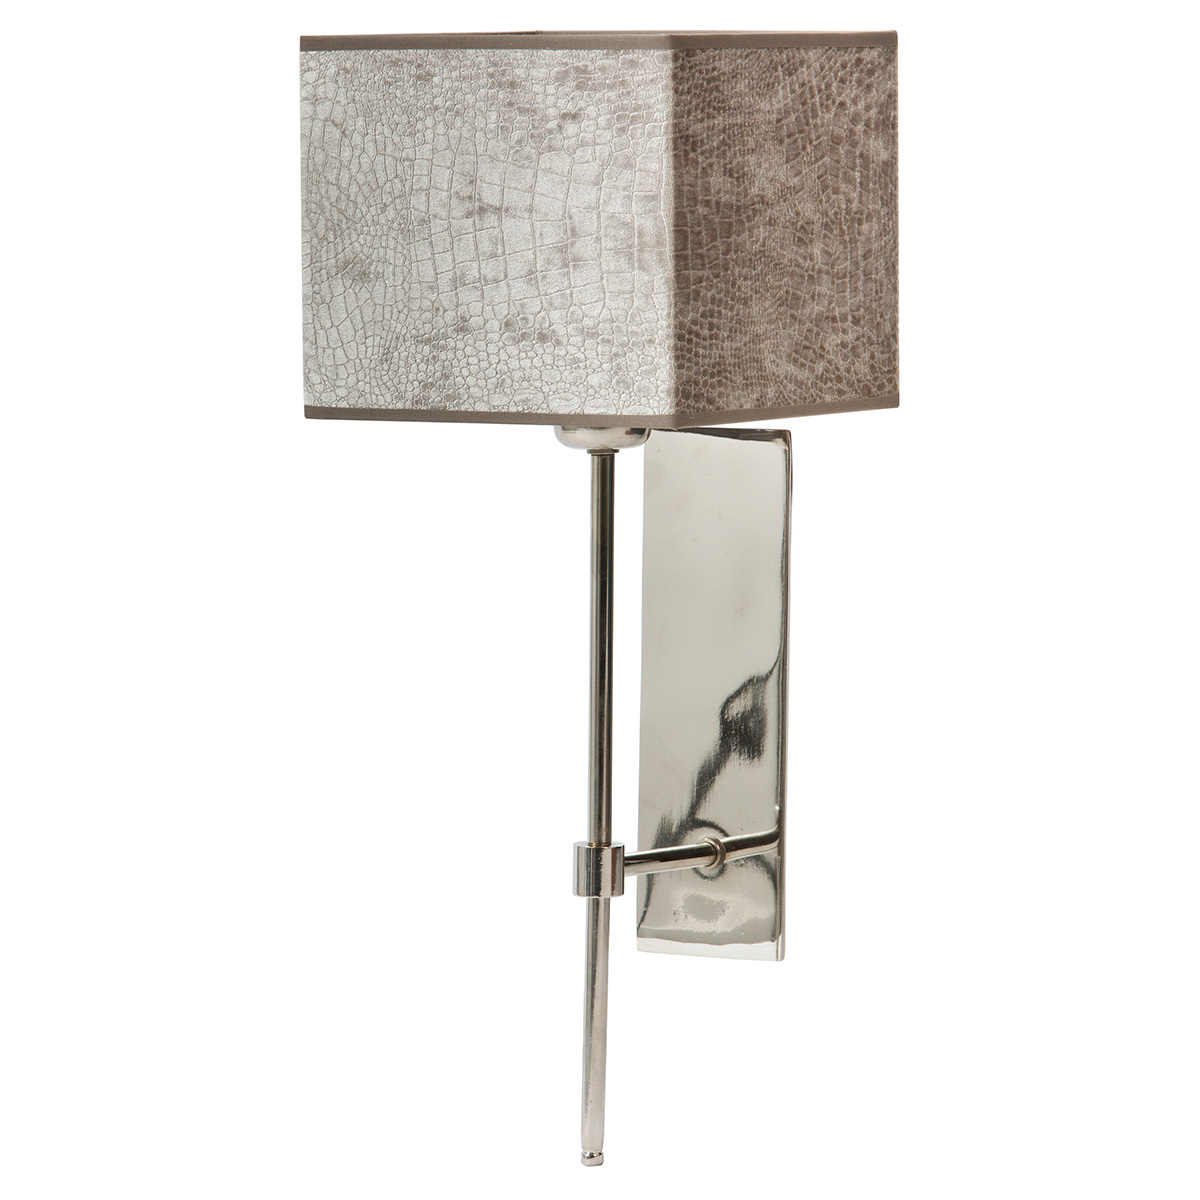 Plug In Wall Sconces Living Room : akita 03 plug in wall sconce